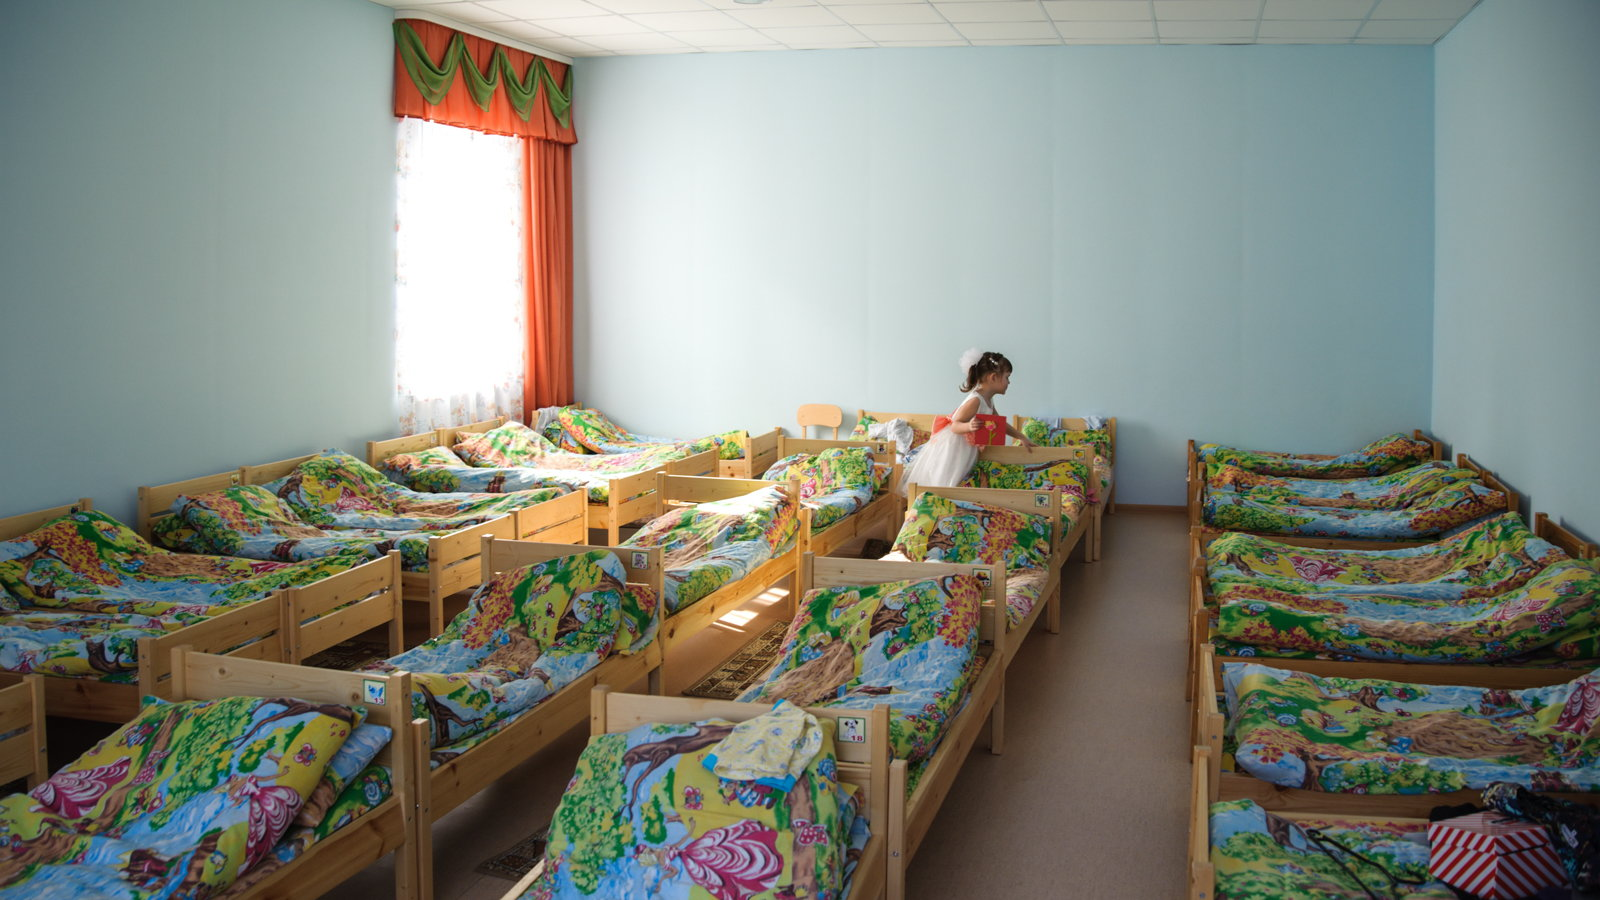 beds in an orphanage